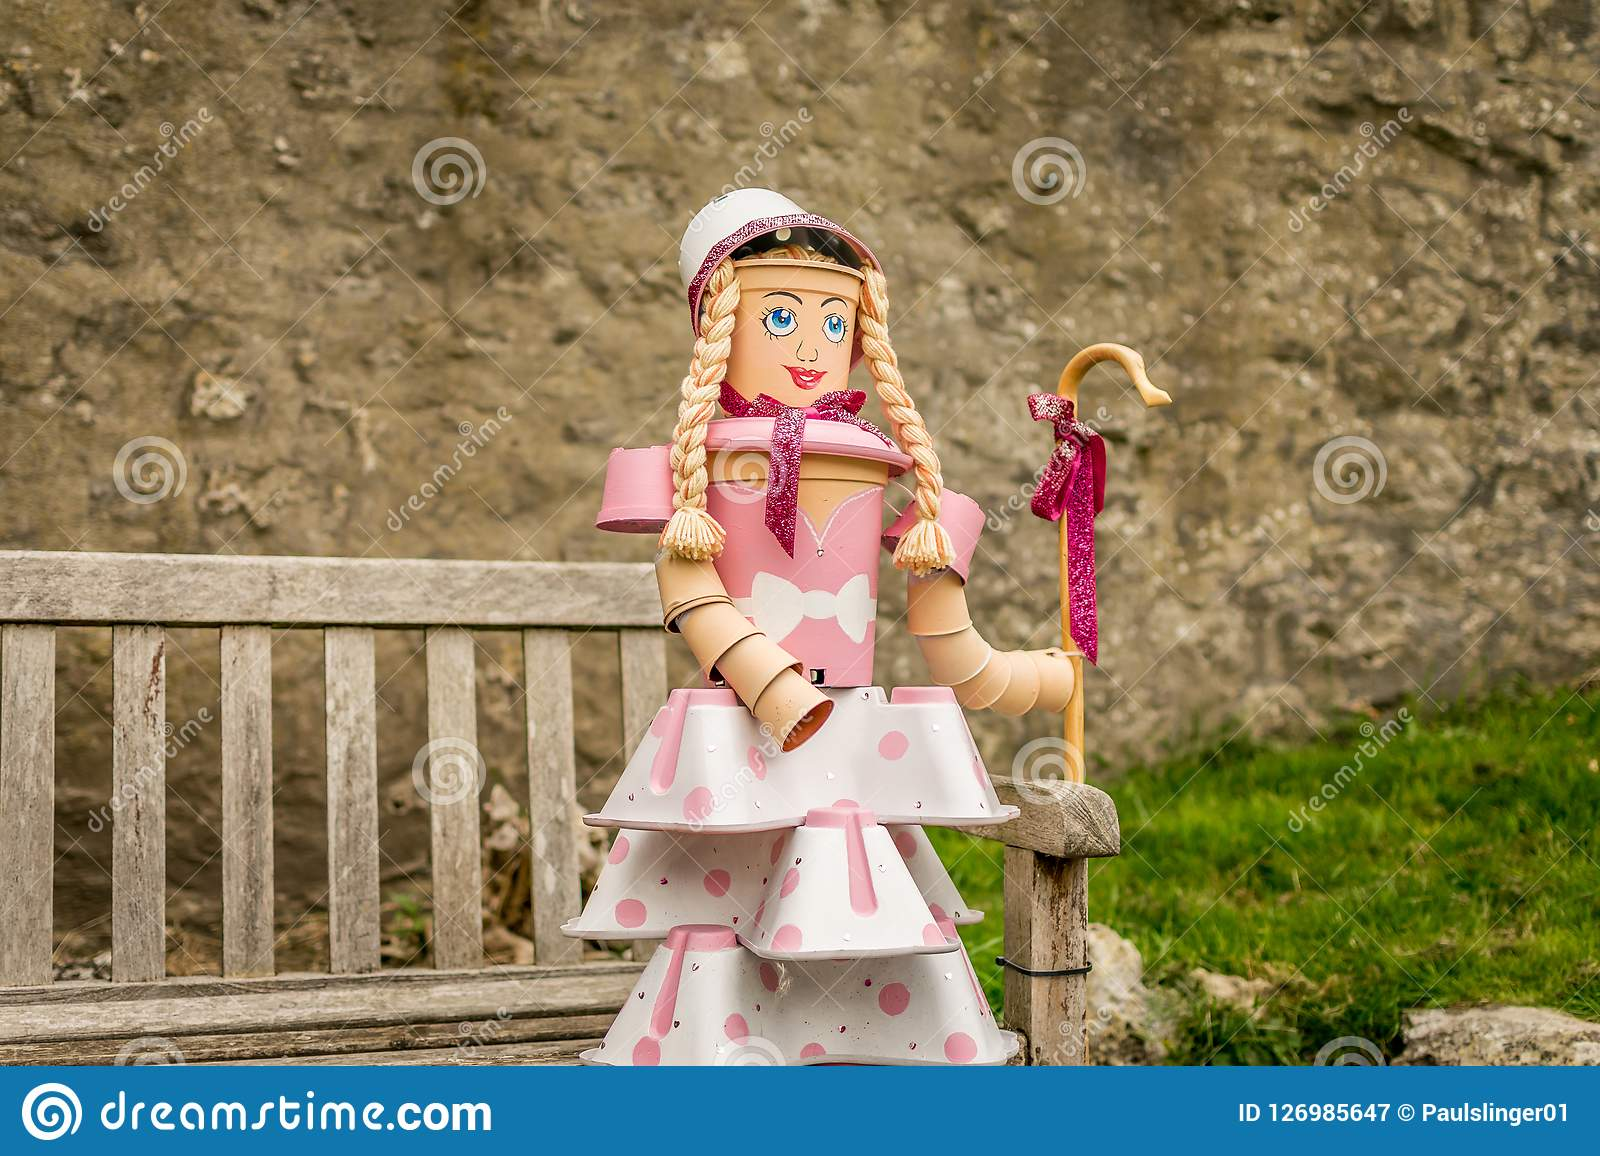 A shepherdess sat on a bench made from plant pots.